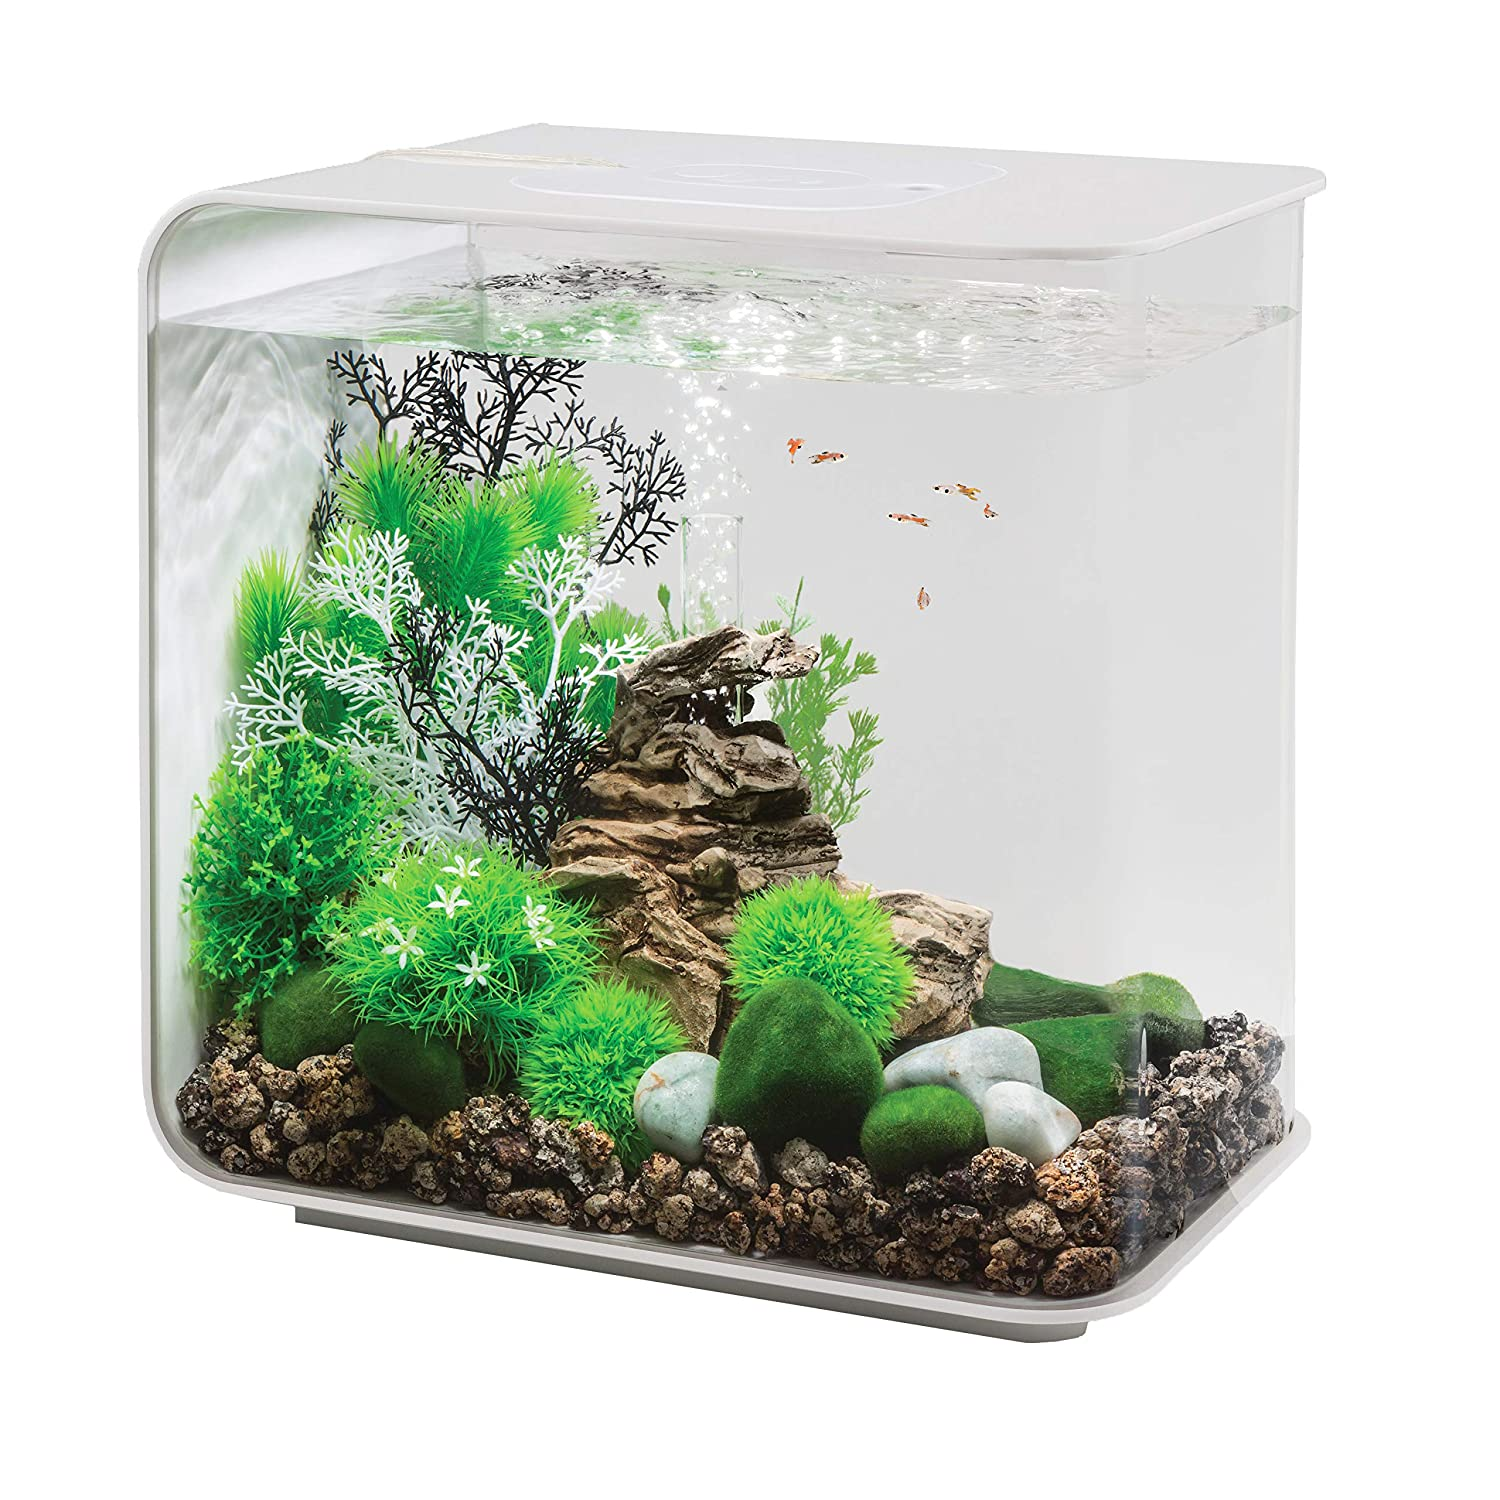 BiOrb FLOW 30 Aquarium with LED Light 8 Gallon, White by biOrb